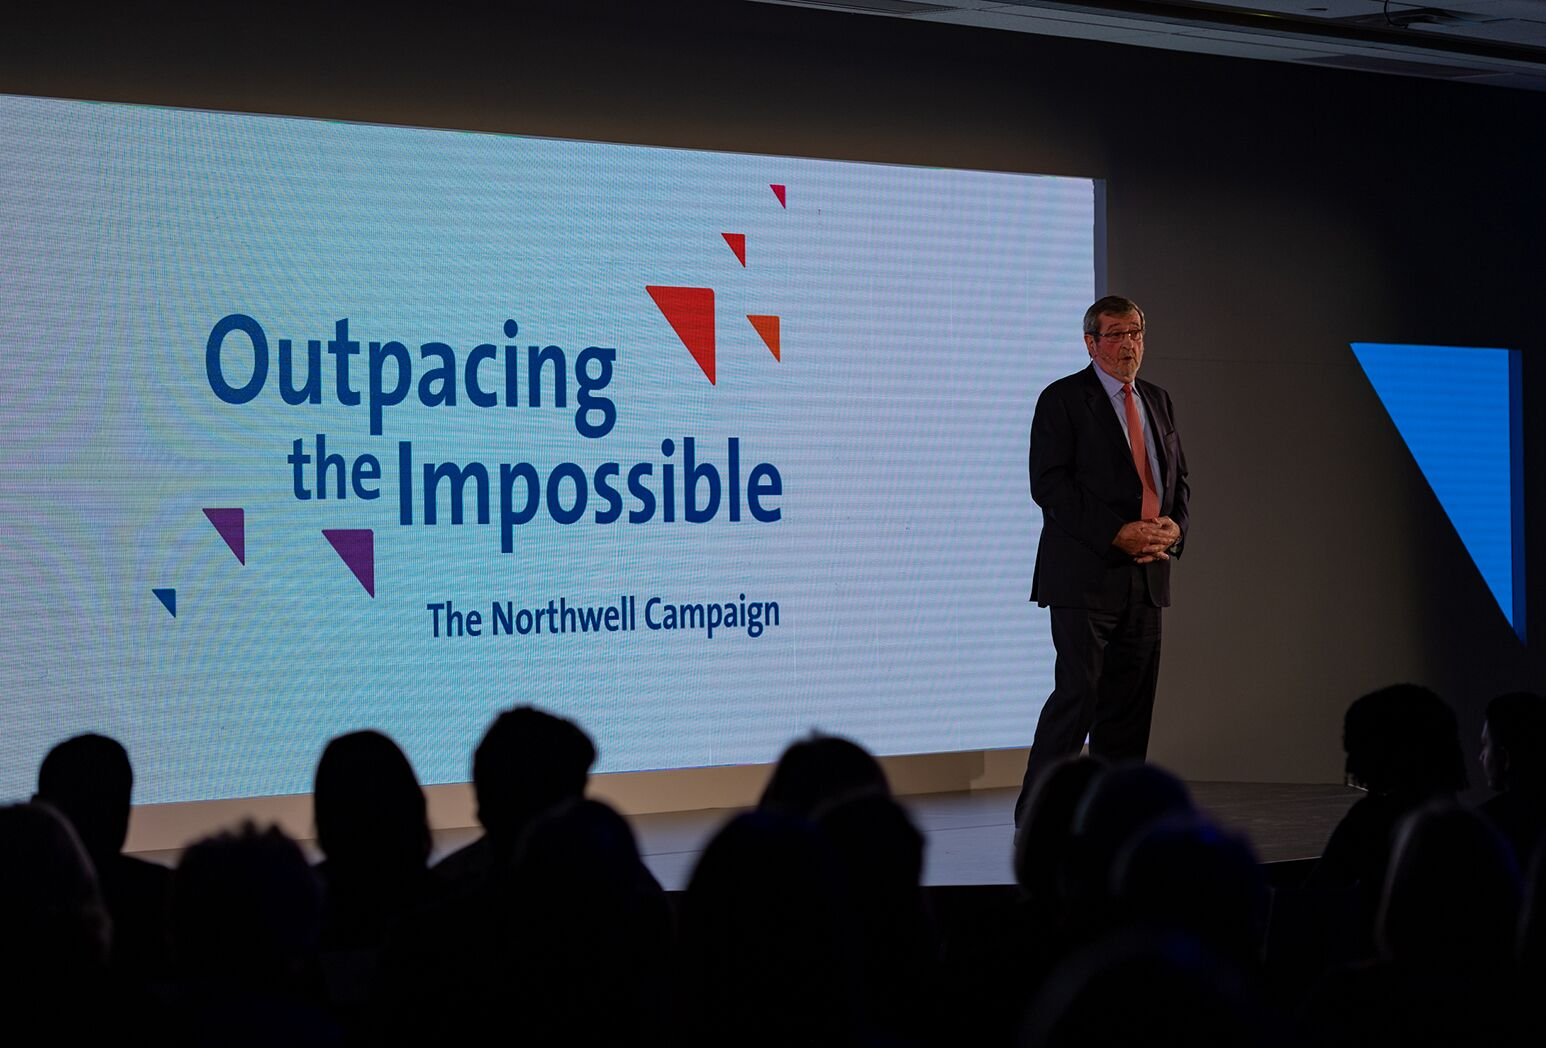 Michael J. Dowling announces Northwell's $1B Outpacing the Impossible fundraising campaign at the October 2018 event launch.